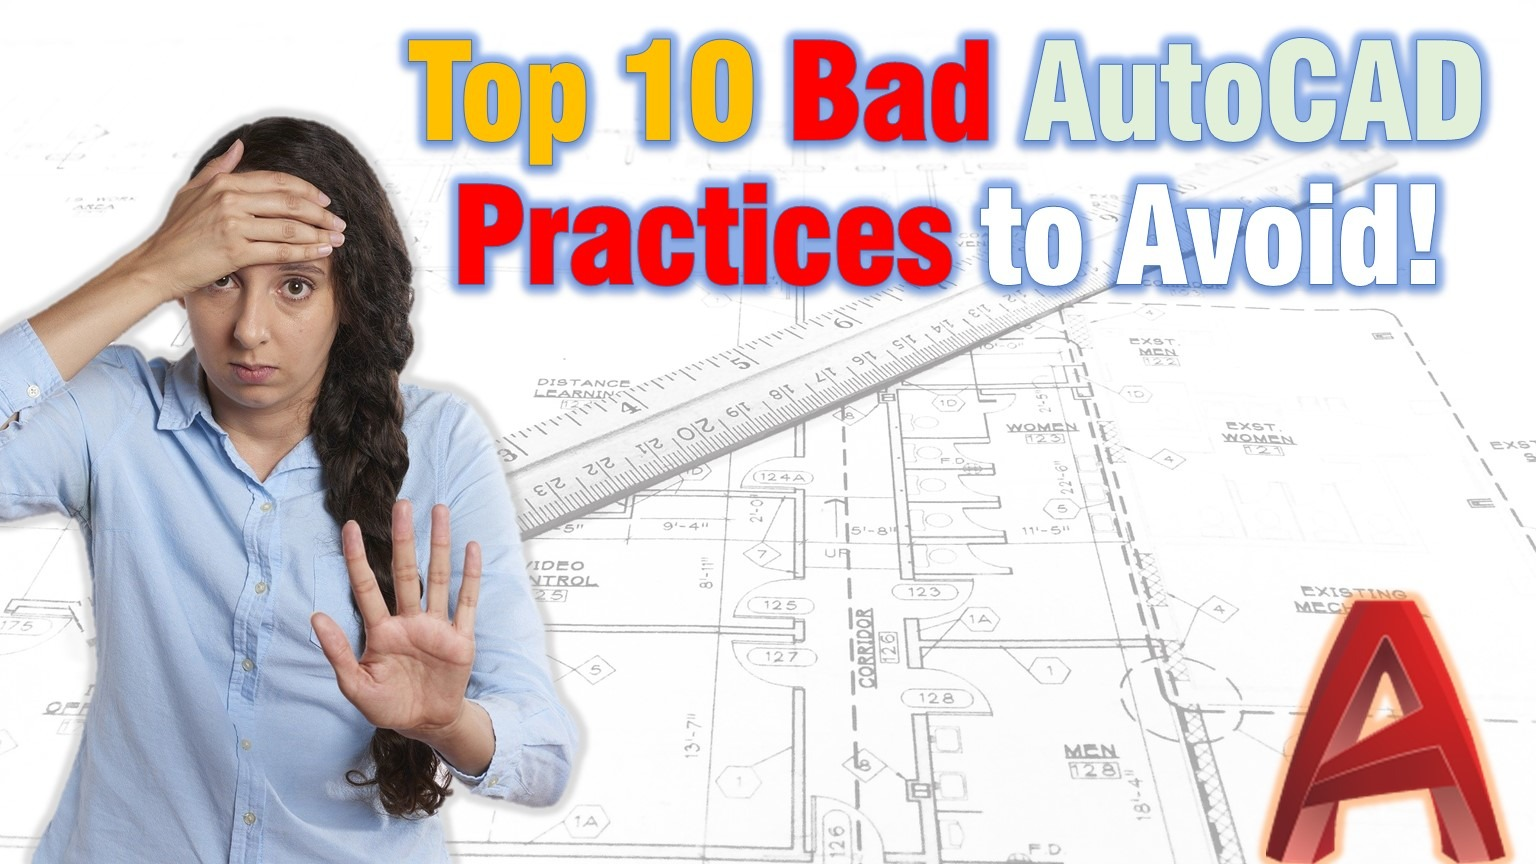 bad autocad practices to avoid